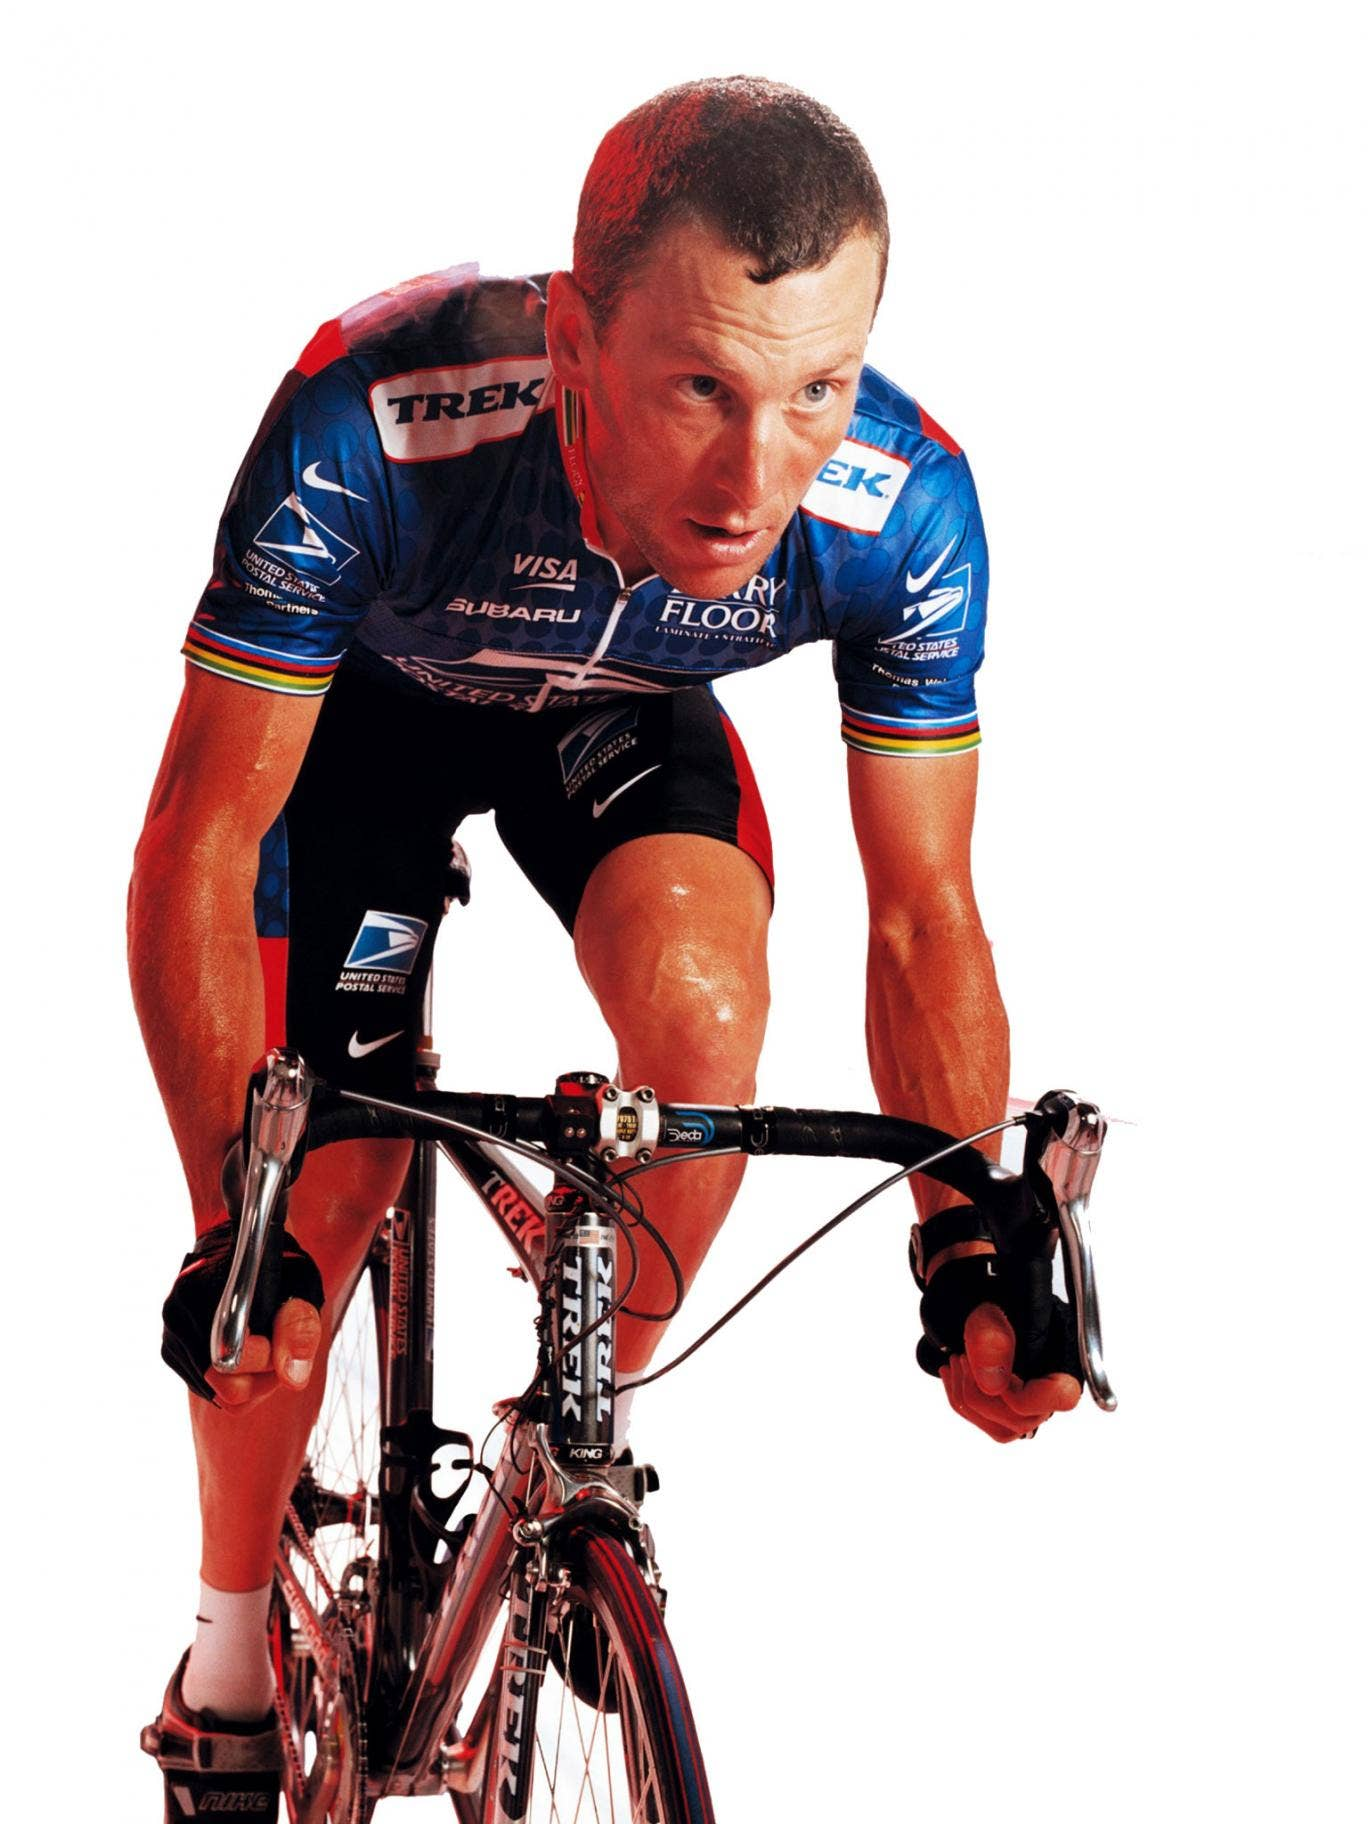 Questions Armstrong must answer: - Why now and not before? - How much did your team know? - Did governing body turn a blind eye? - When did the doping process start? - Will you return your earnings? - Was Michele Ferrari the man who ddoped you? - Did you